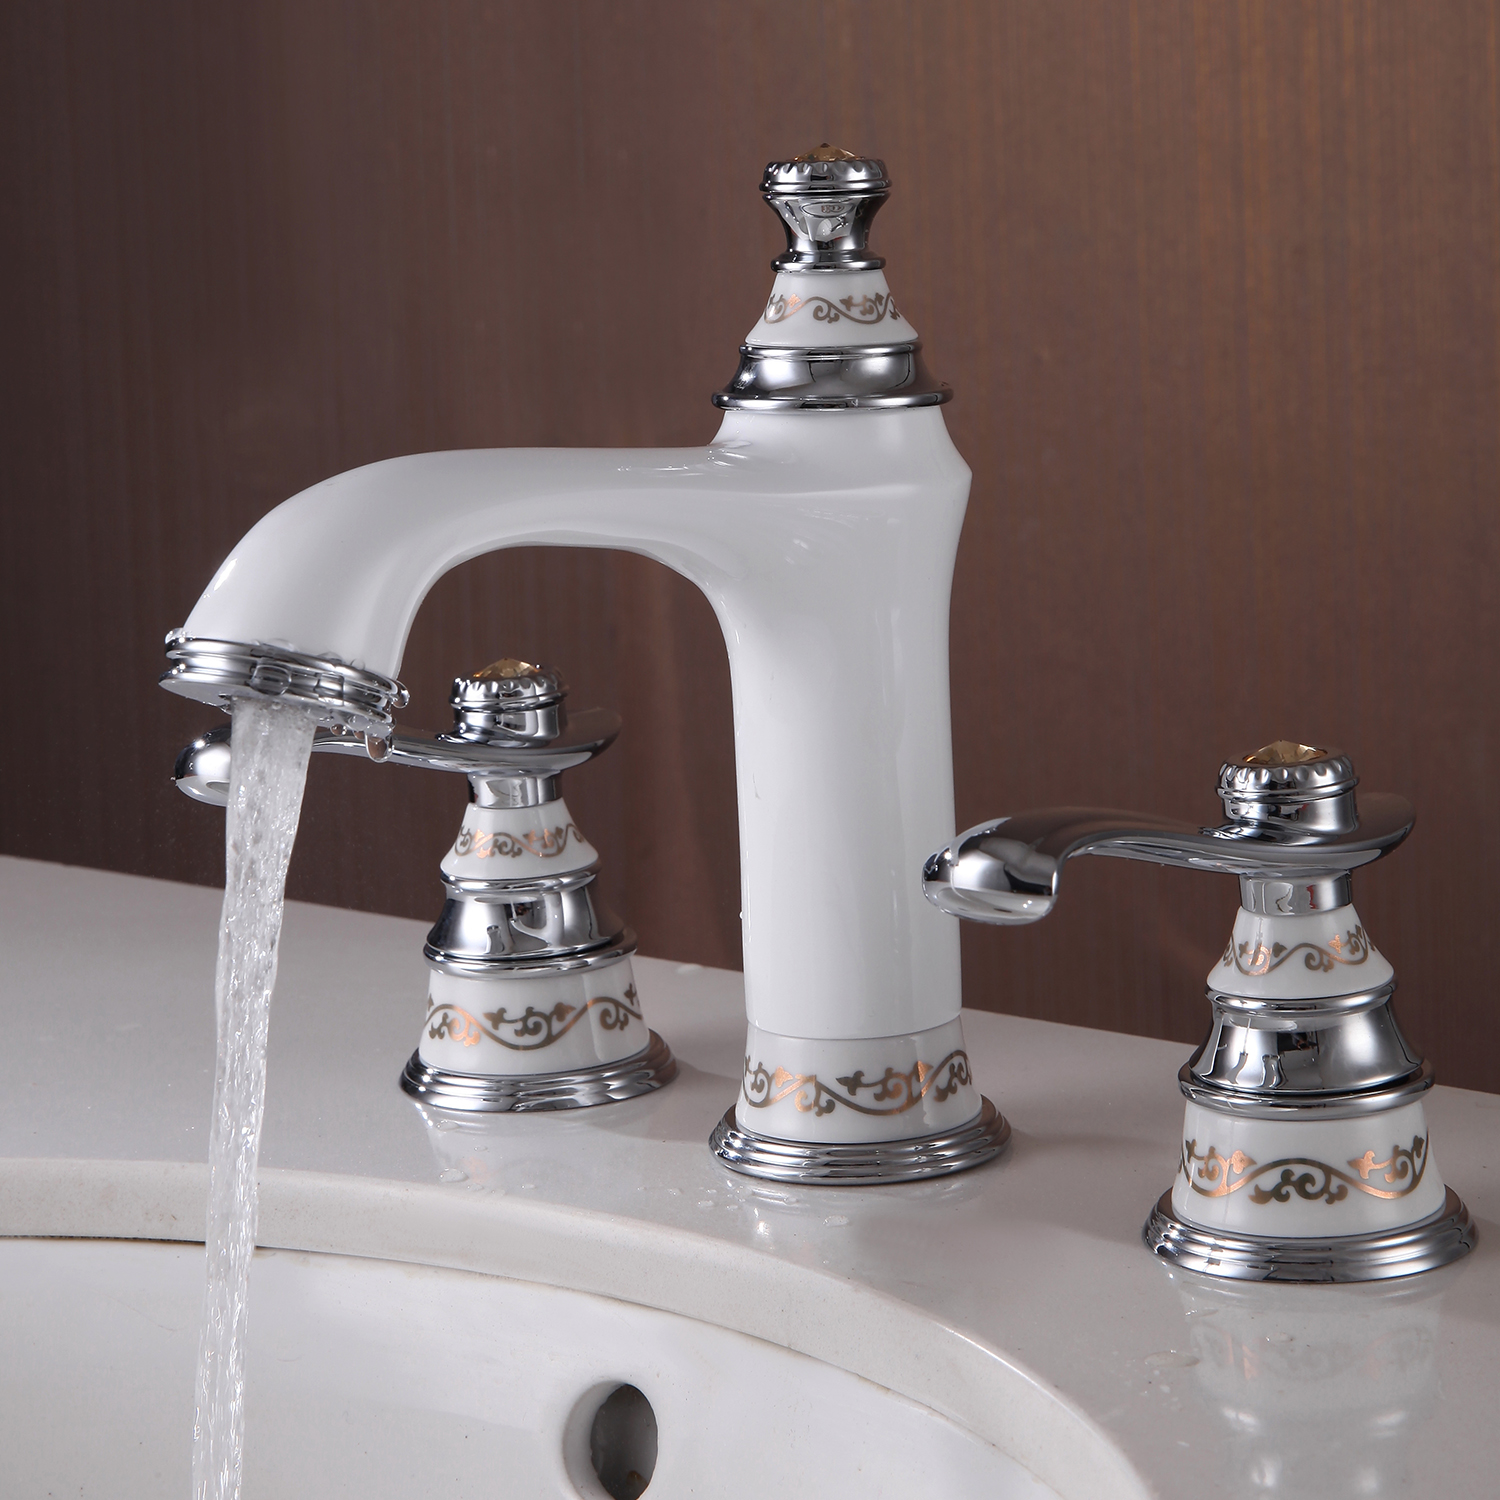 Modern Faucets For Bathroom Sinks Faucets Bathroom Sink Faucets Modern Chrome Bathroom Sink